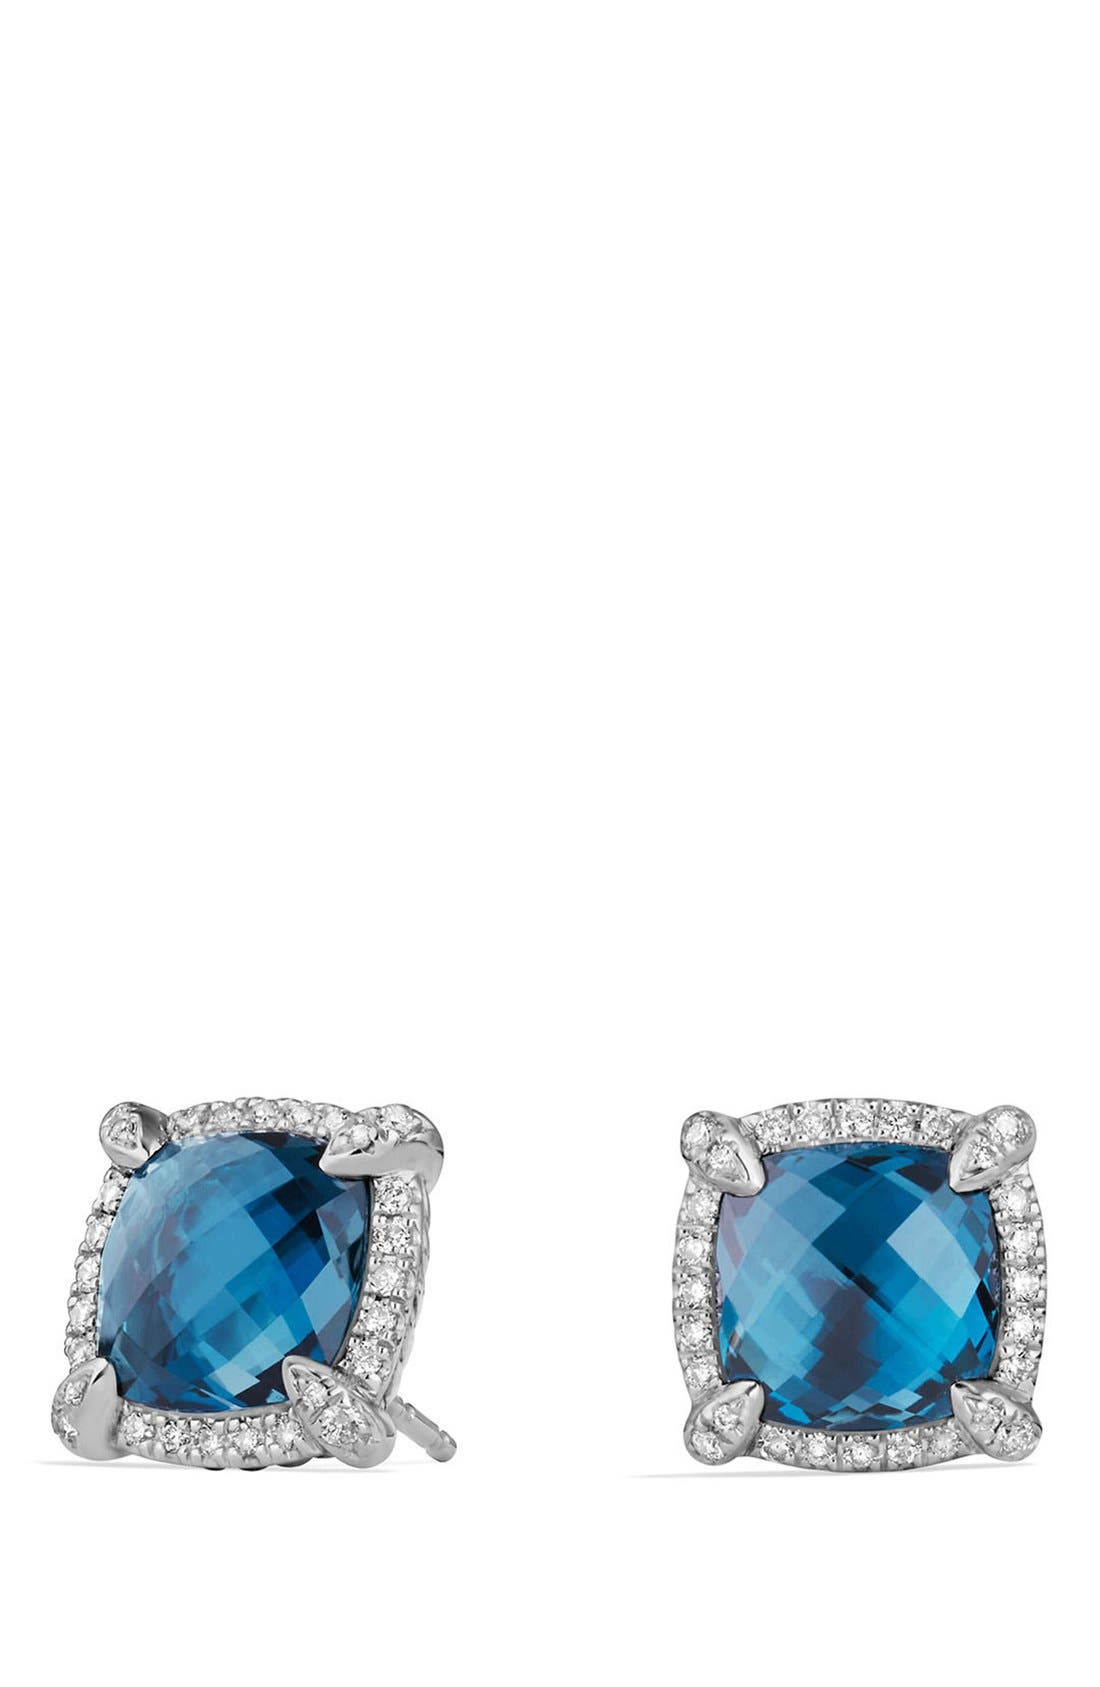 Alternate Image 1 Selected - David Yurman 'Châtelaine' Pavé Bezel Stud Earrings with Diamonds